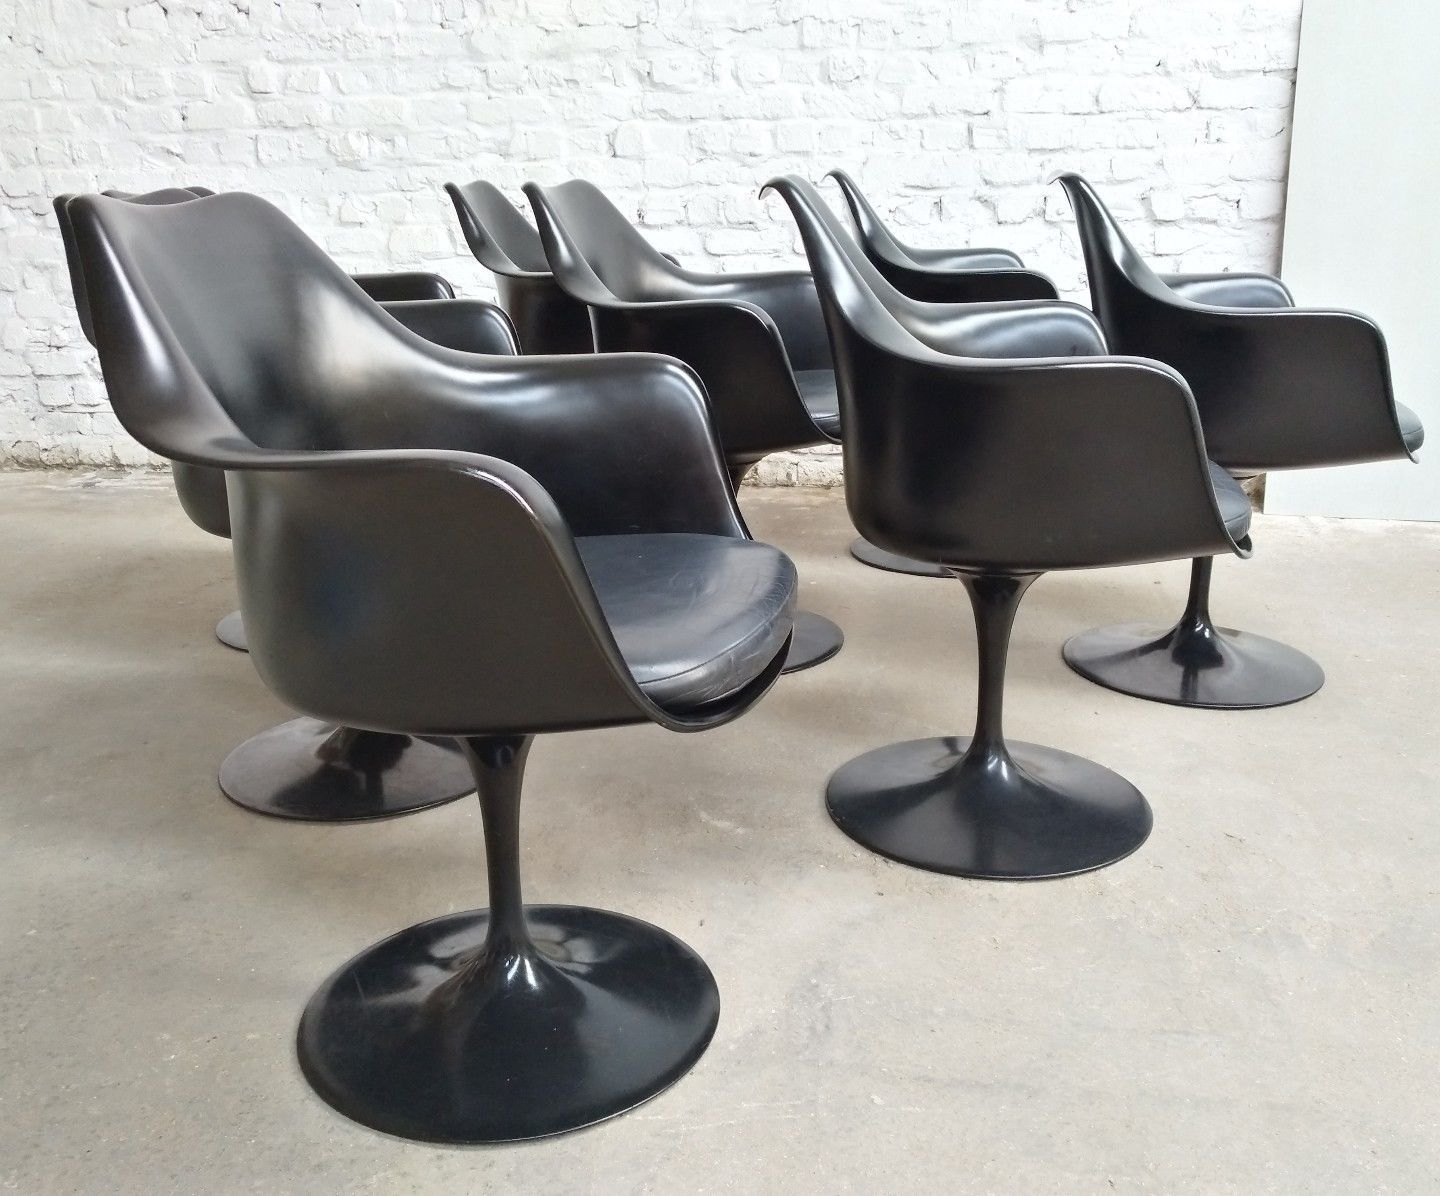 black leather tulip swivel armchair by eero saarinen for knoll 1980s set of 8 for sale at pamono. Black Bedroom Furniture Sets. Home Design Ideas